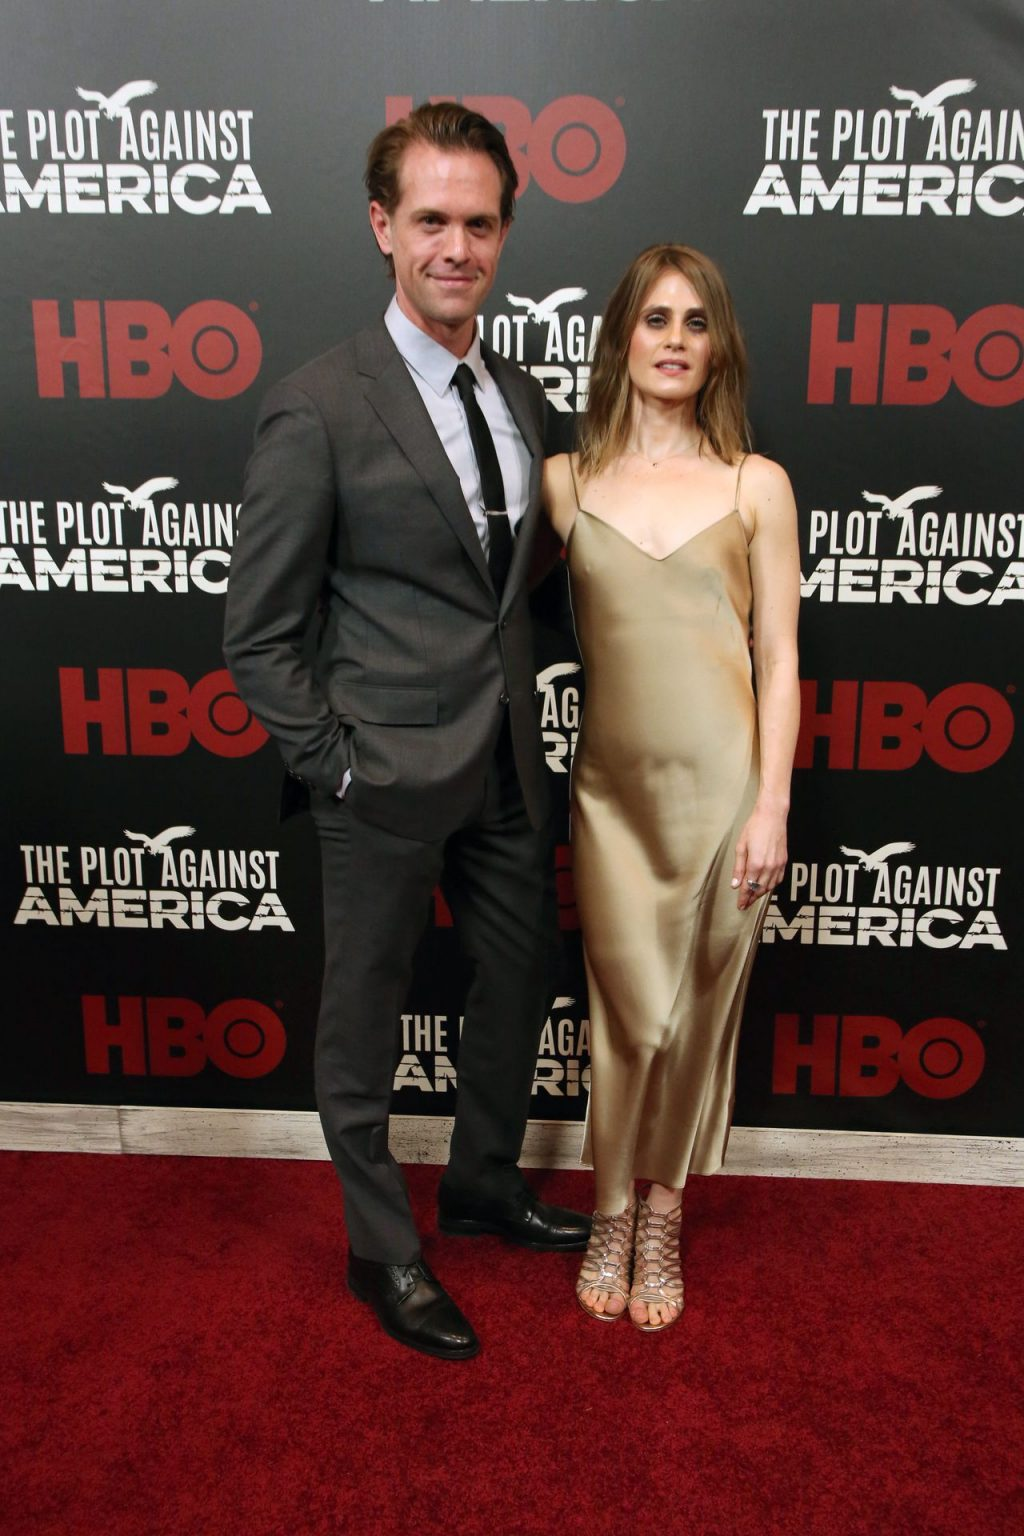 Caroline Kaplan Shows Her Pokies at the New York Premiere of HBO's The Plot Against America (30 Photos)